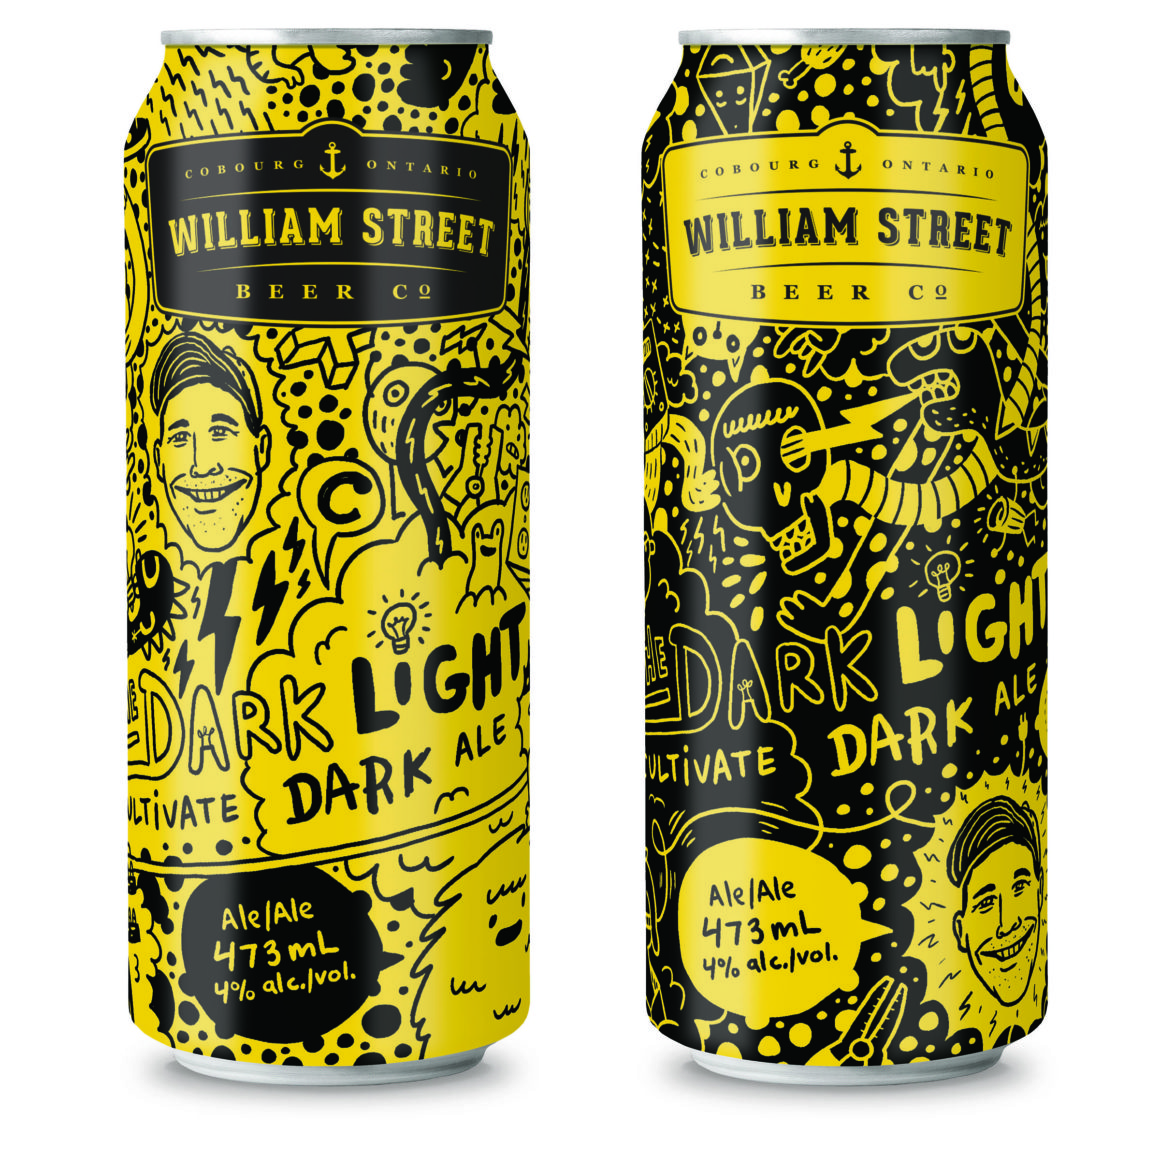 Luke Despatie & The Design Firm | Cultivate Light/Dark ale